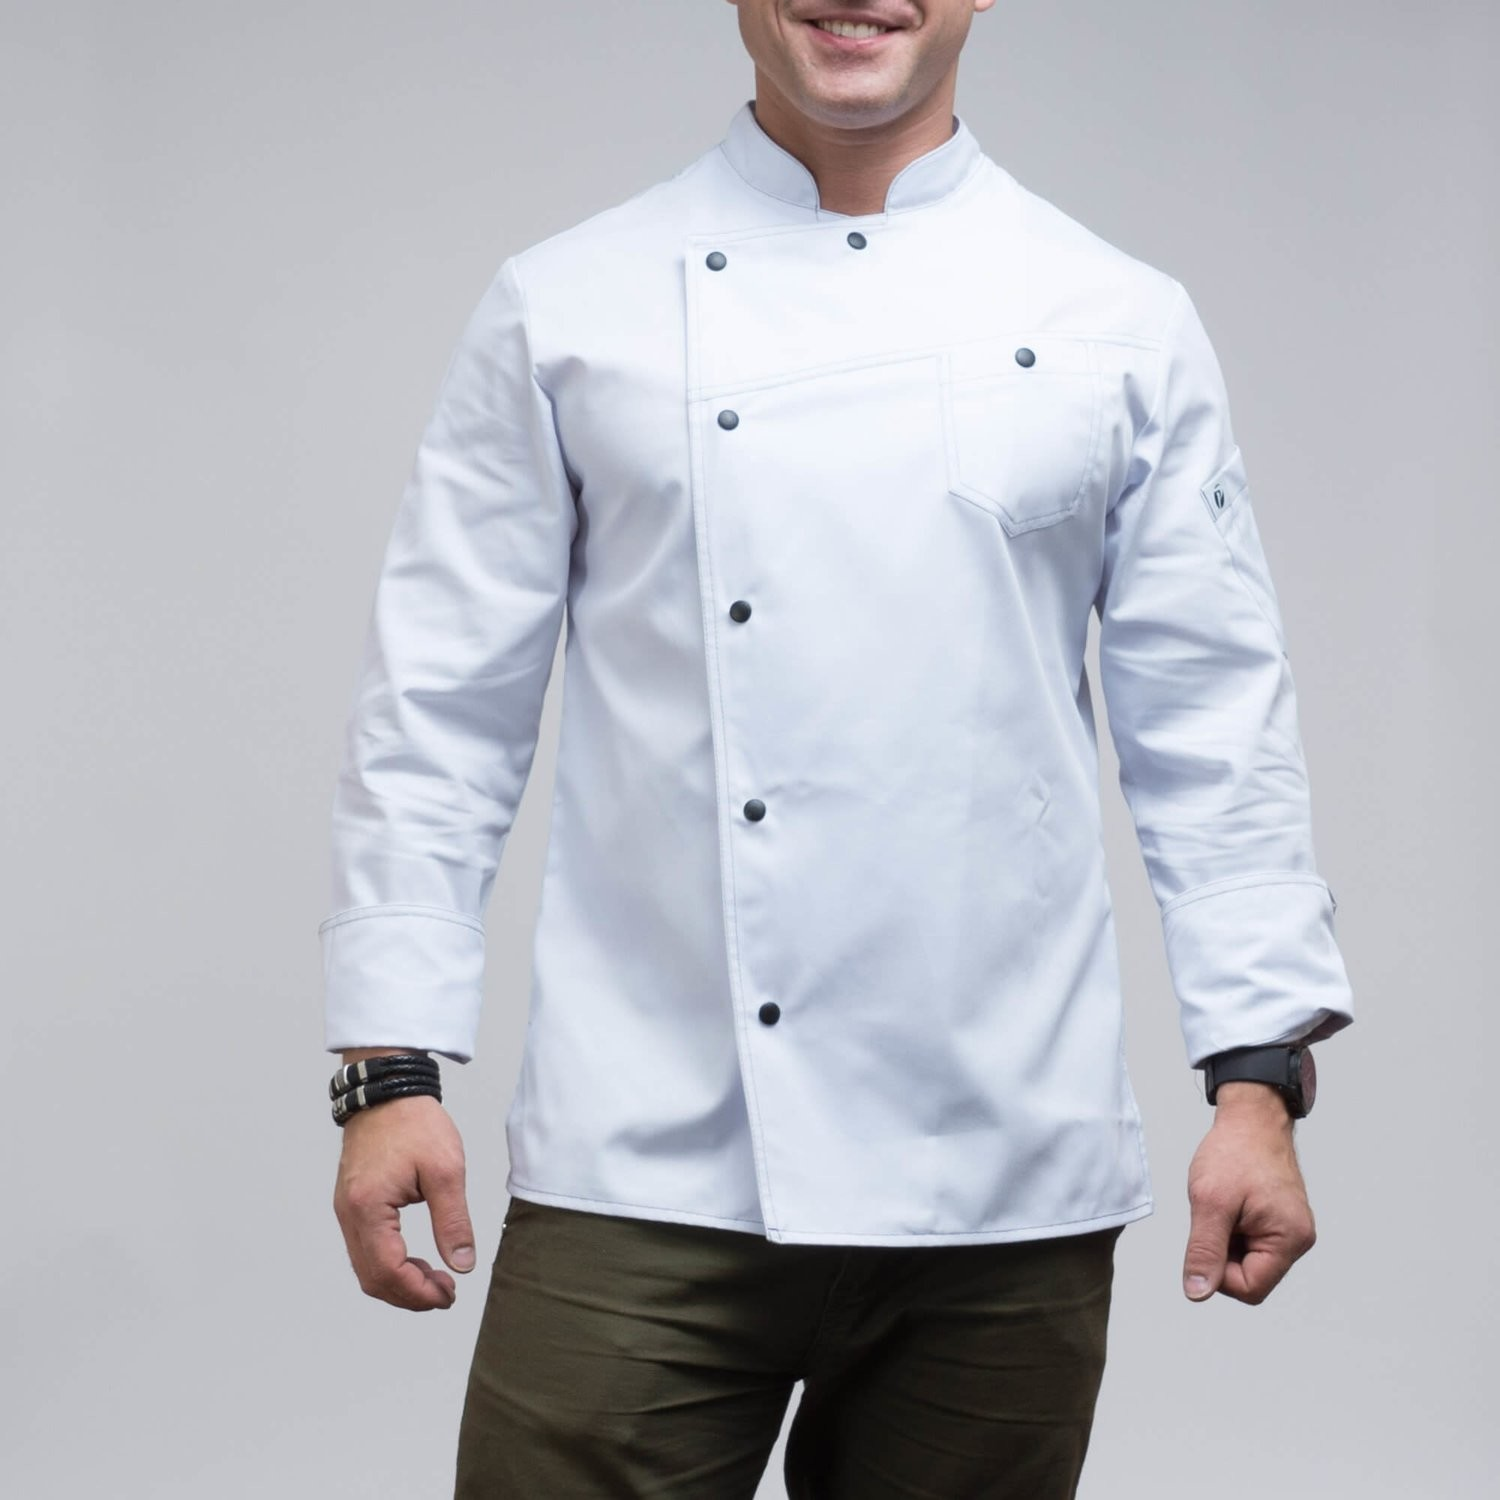 140WHITE - CHEF'S JACKET